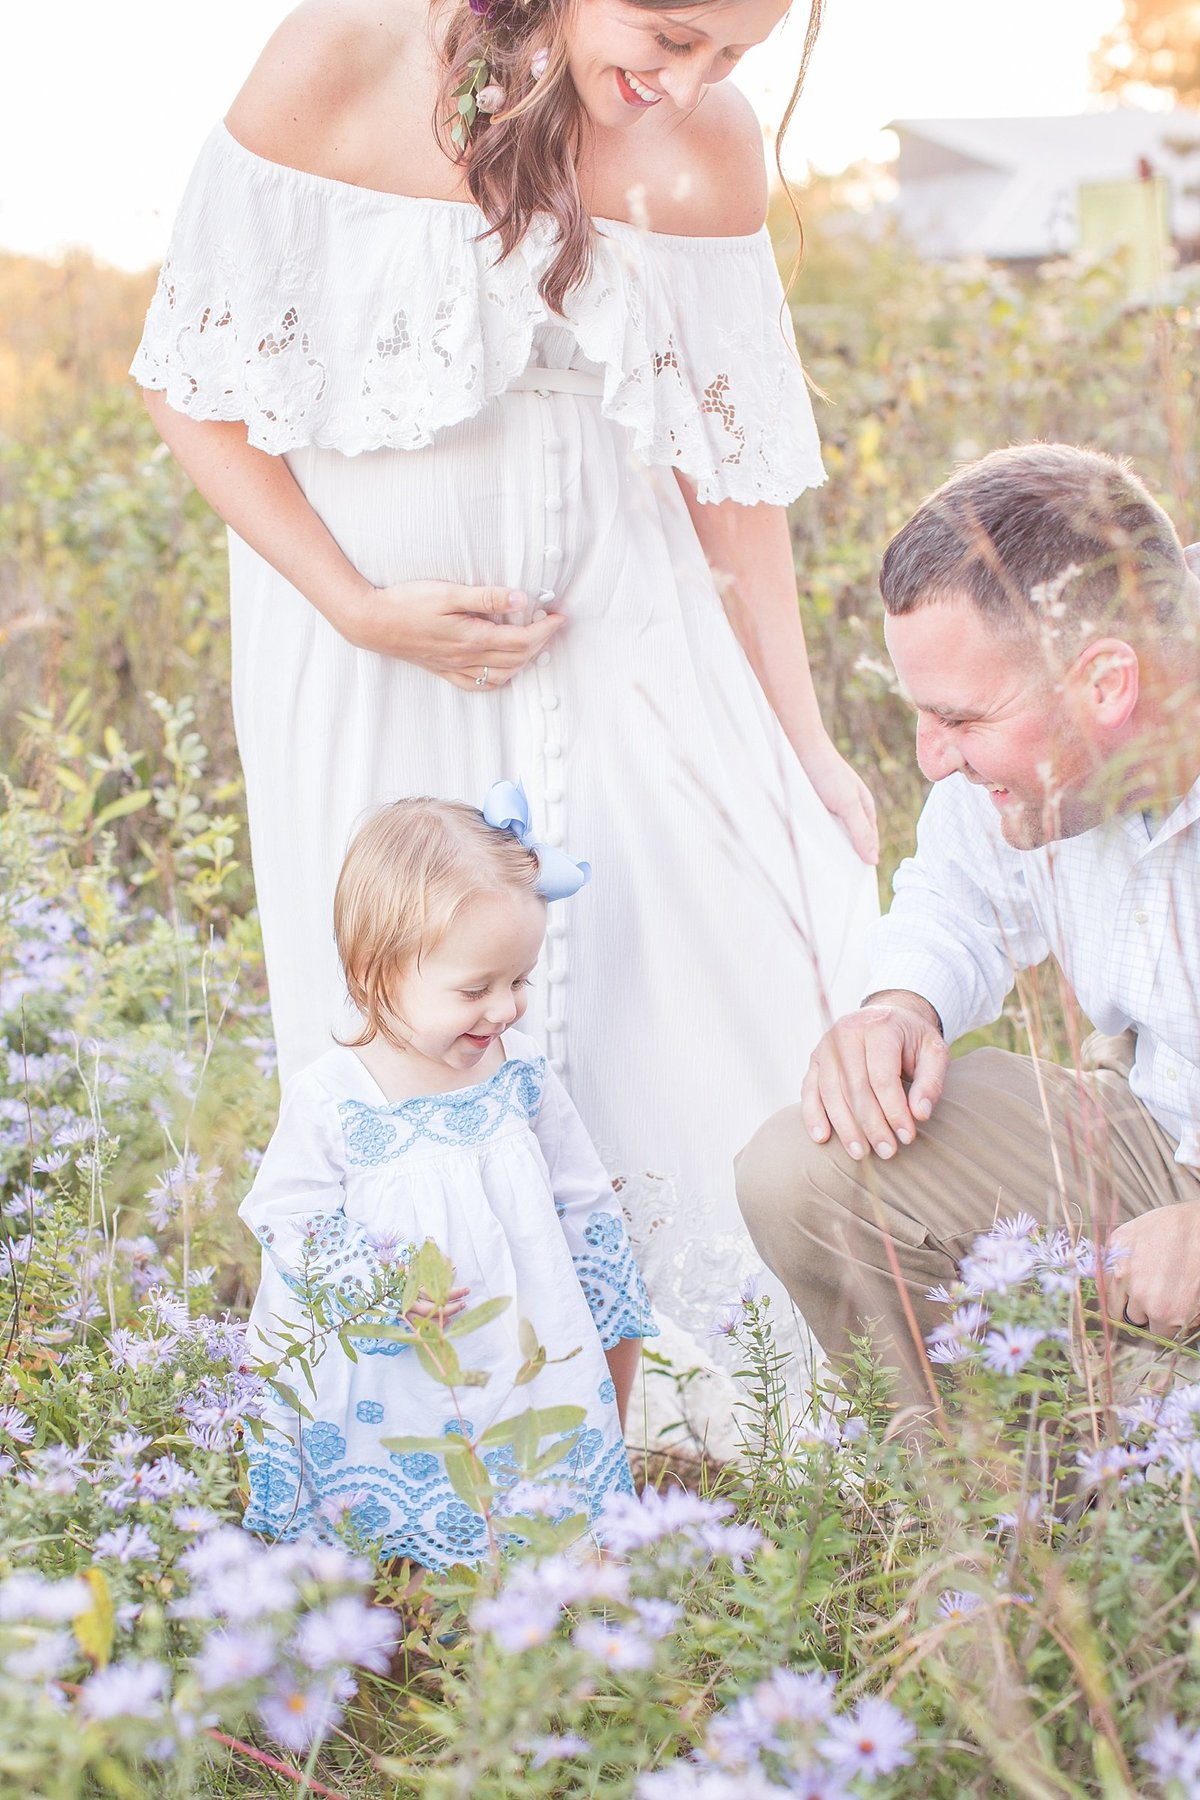 Maryland-maternity-session-jess-becker-photography-2